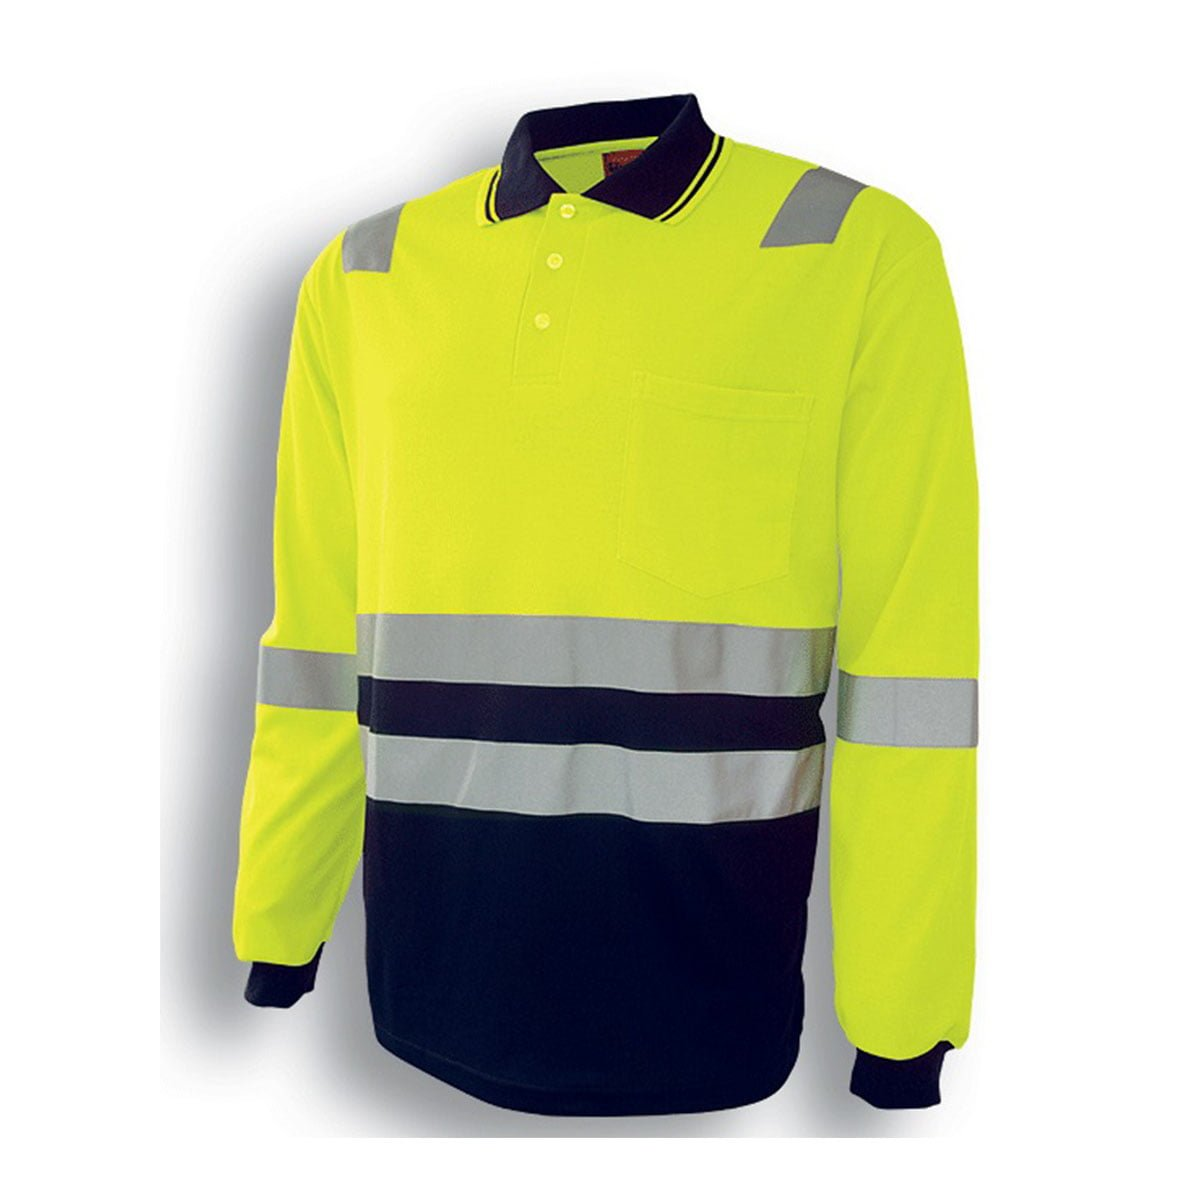 HI-VIS POLYFACE/COTTON BACK POLO WITH TAPE – L/S-Lime / Navy